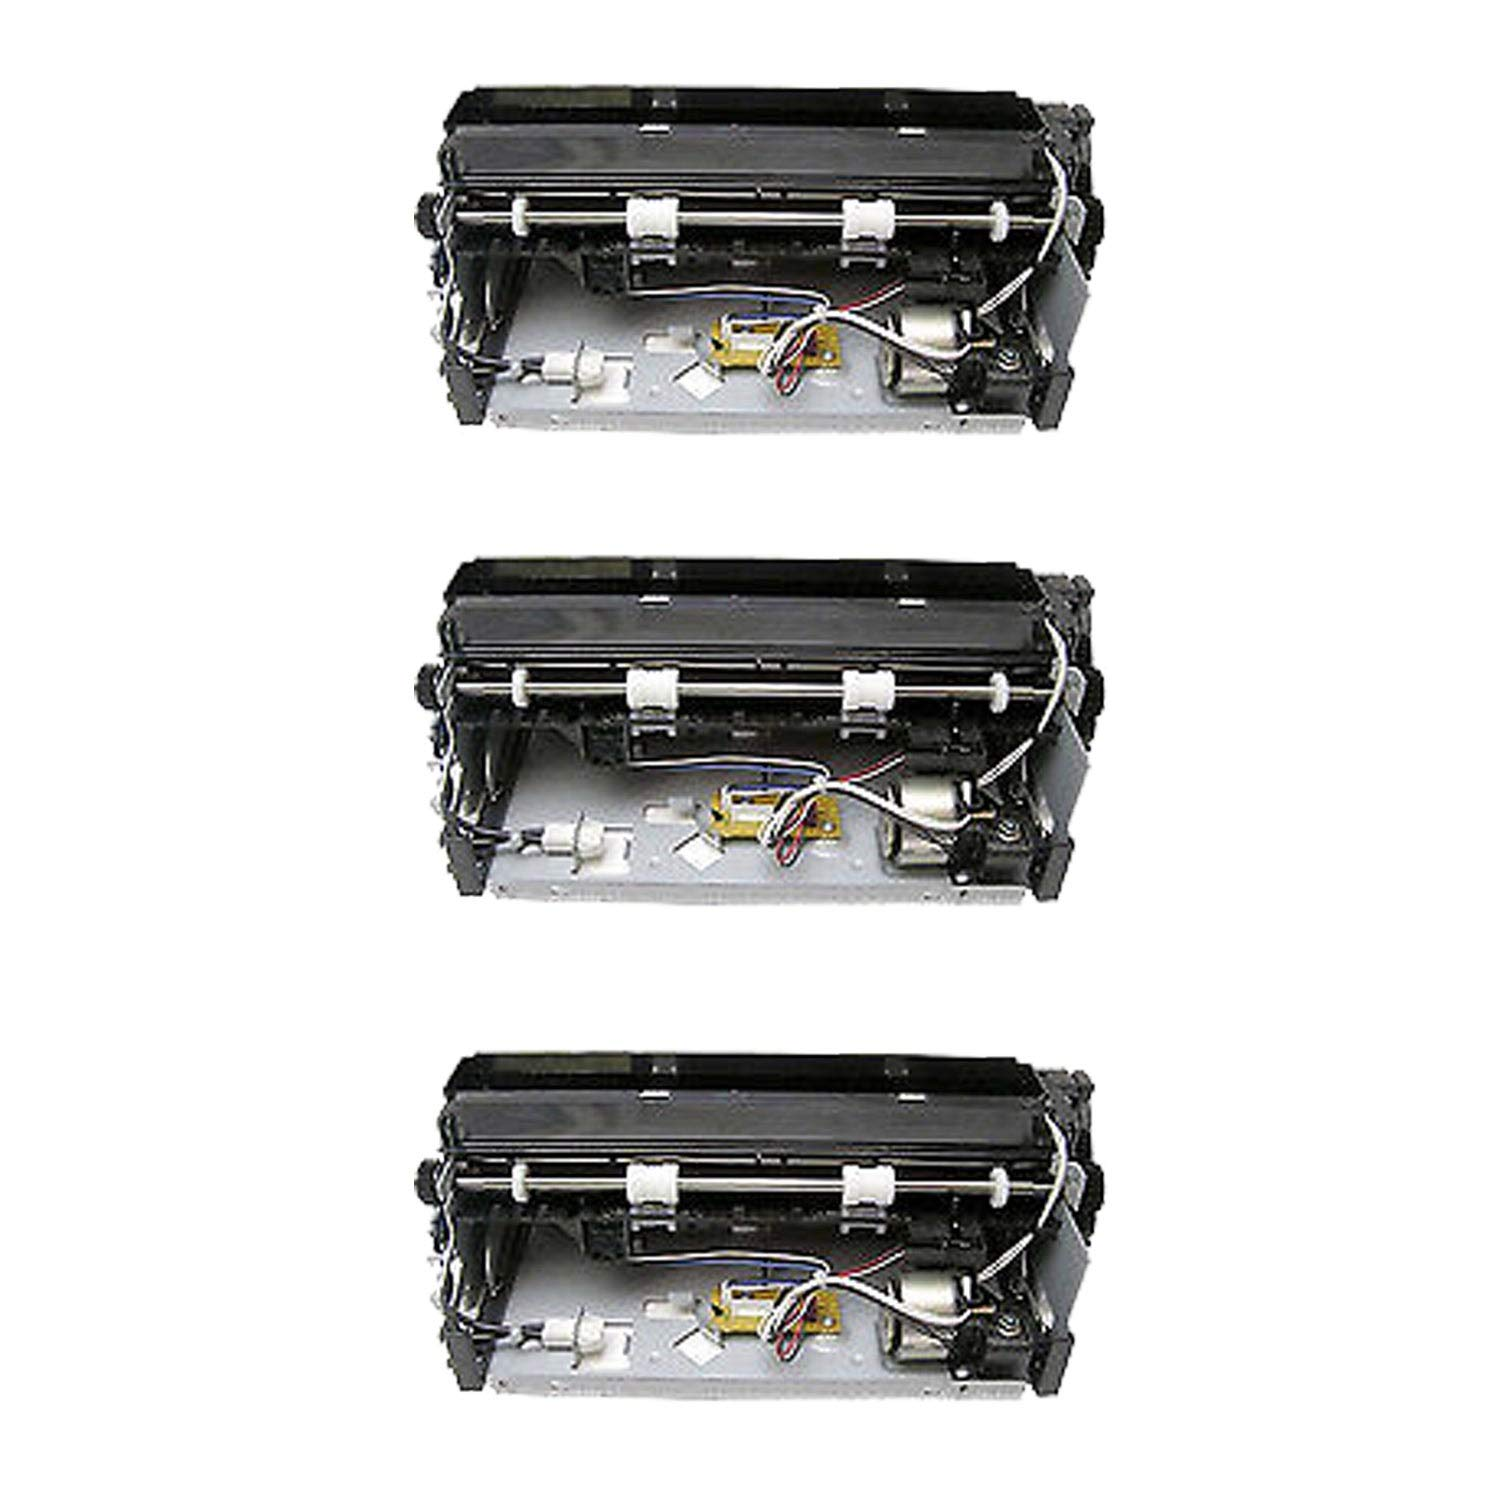 N&L Global CO. 3PK 56P2542 Compatible Fusers for Lexmark Optra T630 T632 (Pack of 3)